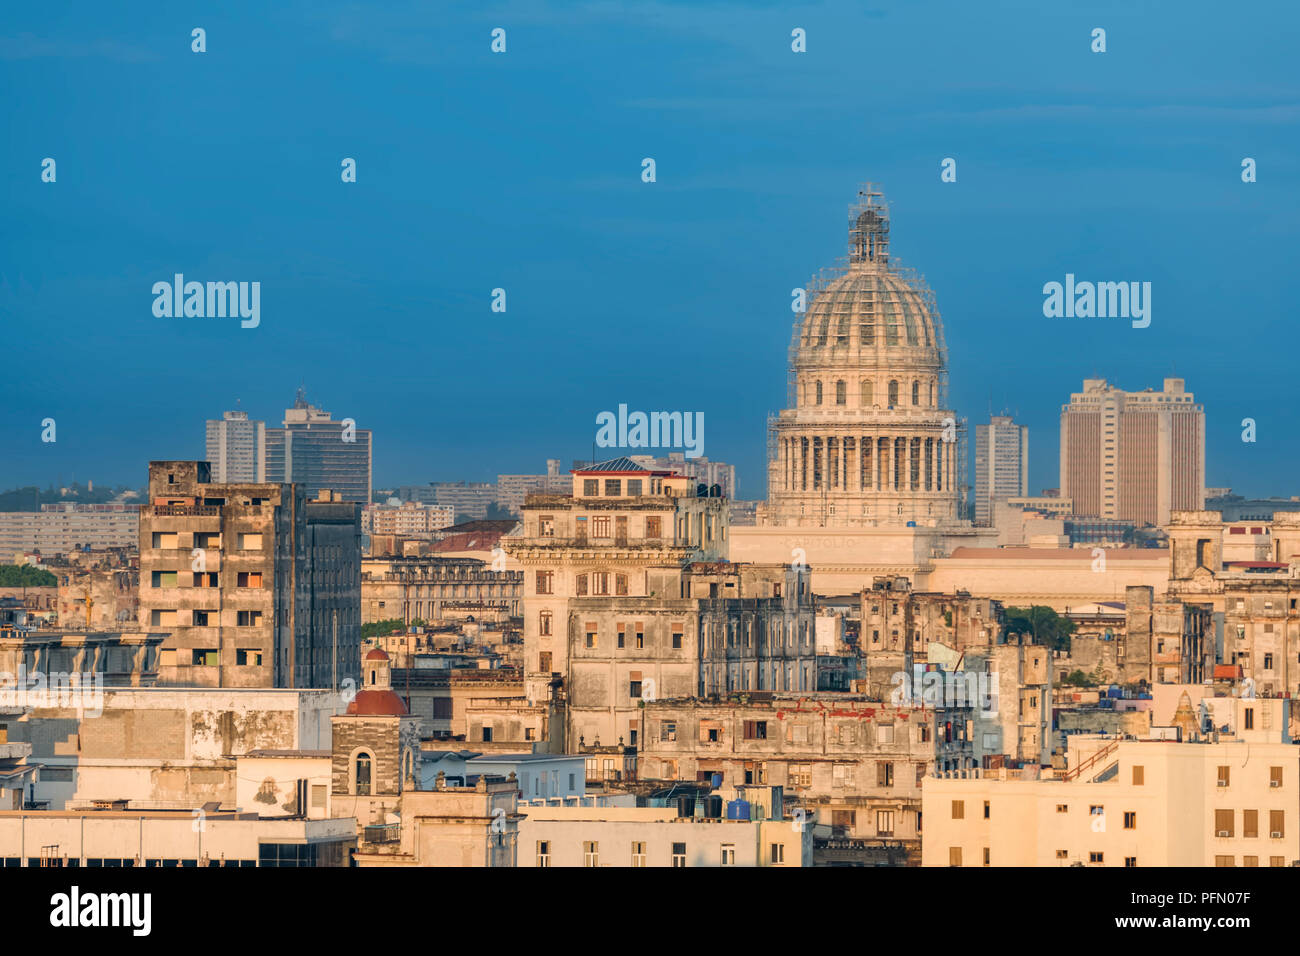 dilapidated stone buildings of an ancient city with a dome of the capitol on a blue background of a clear tropical sky